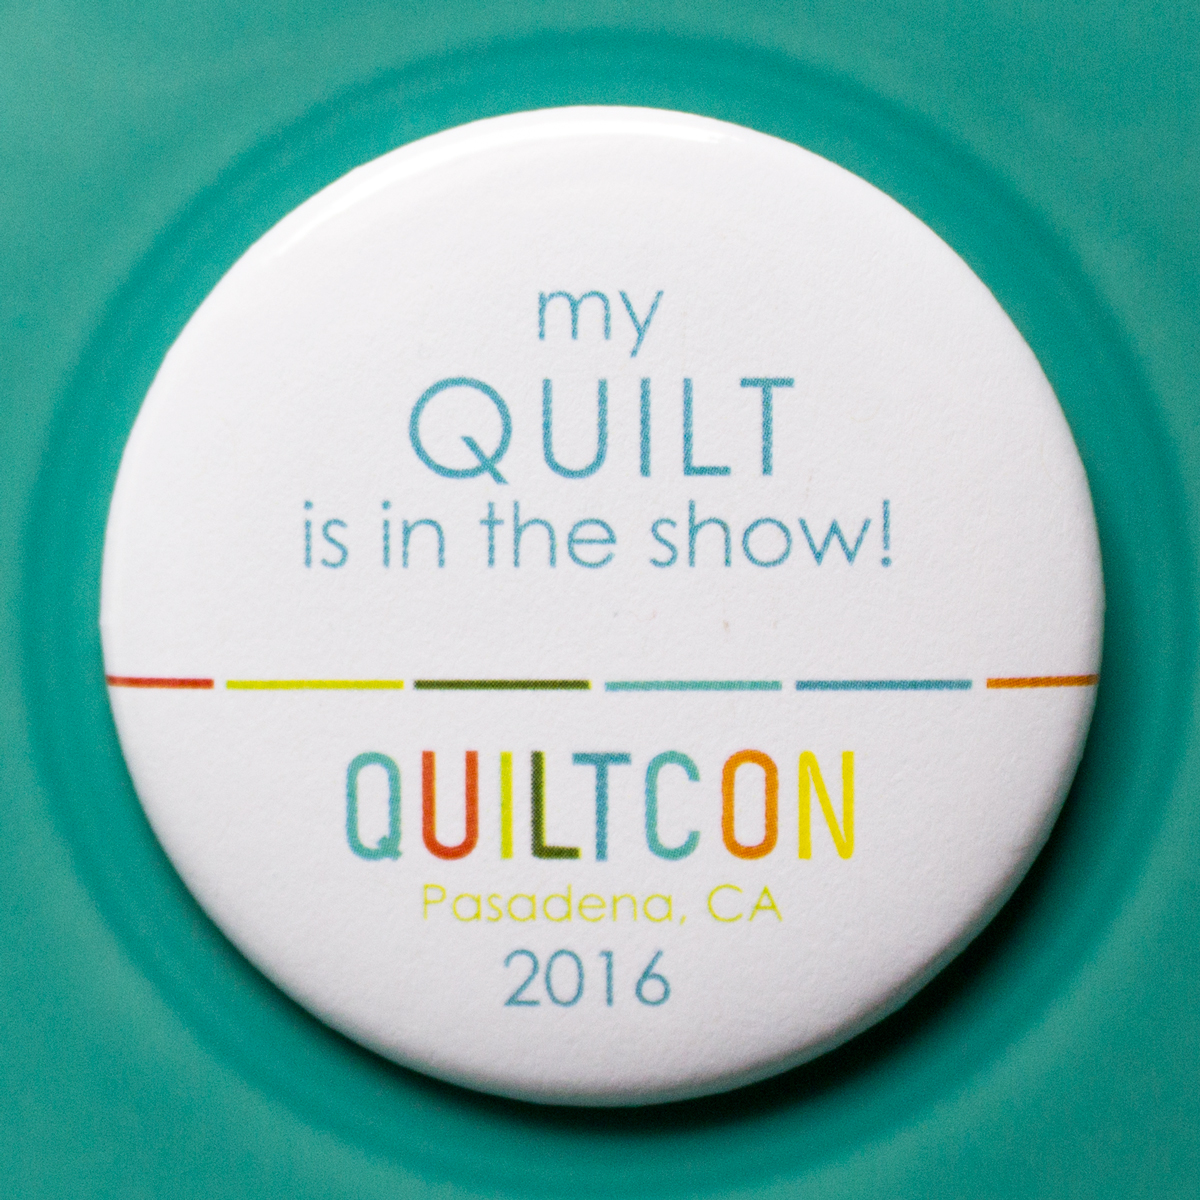 QUILTCON FEB 18 - 24. 2016